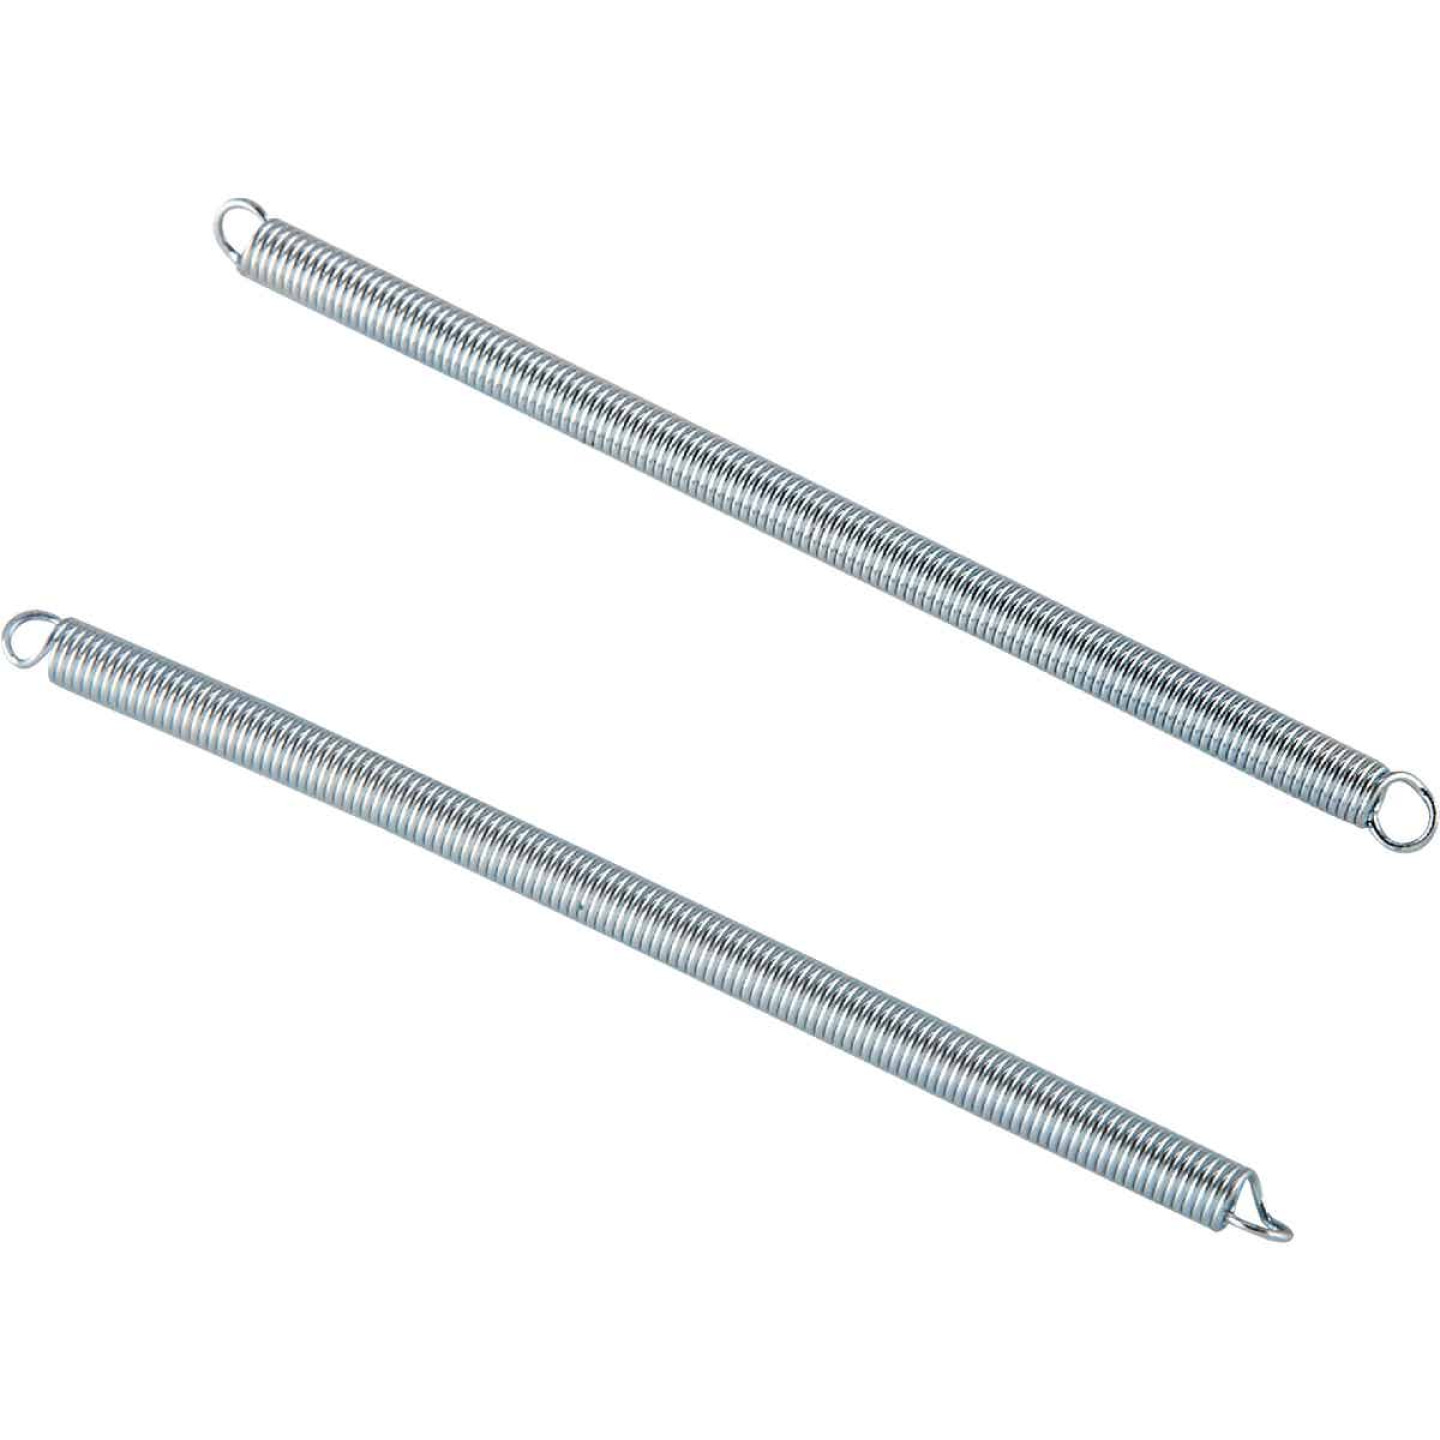 Century Spring 4-1/2 In. x 15/32 In. Extension Spring (2 Count) Image 1